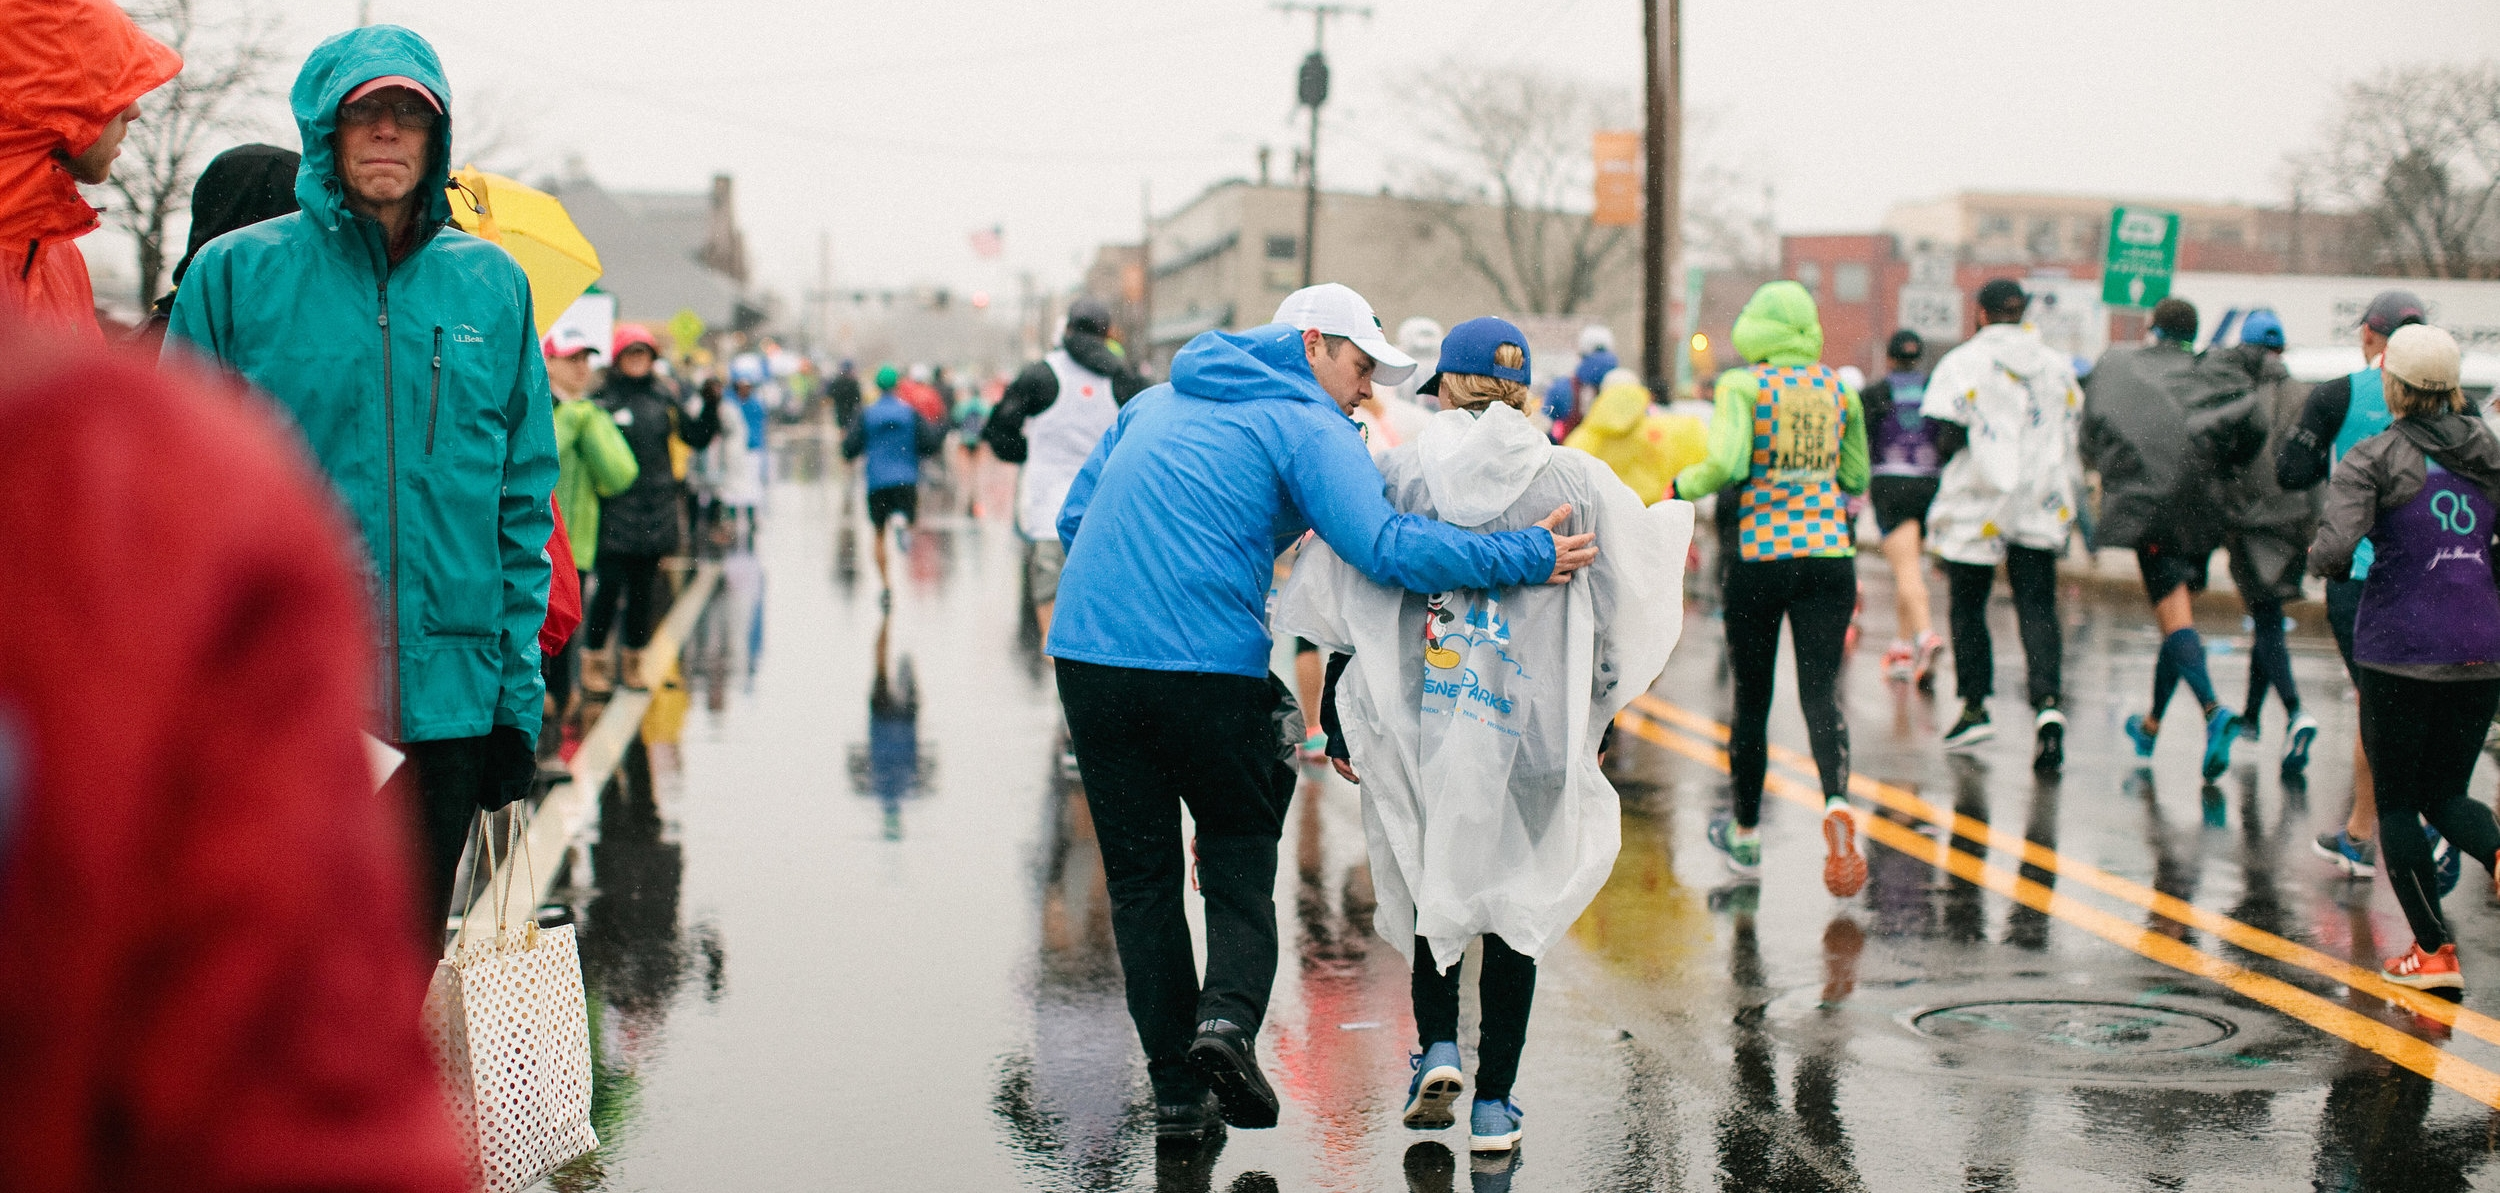 Mile 6 of the Boston Marathon. My husband giving me some encouragement. Photo by Tina Florance